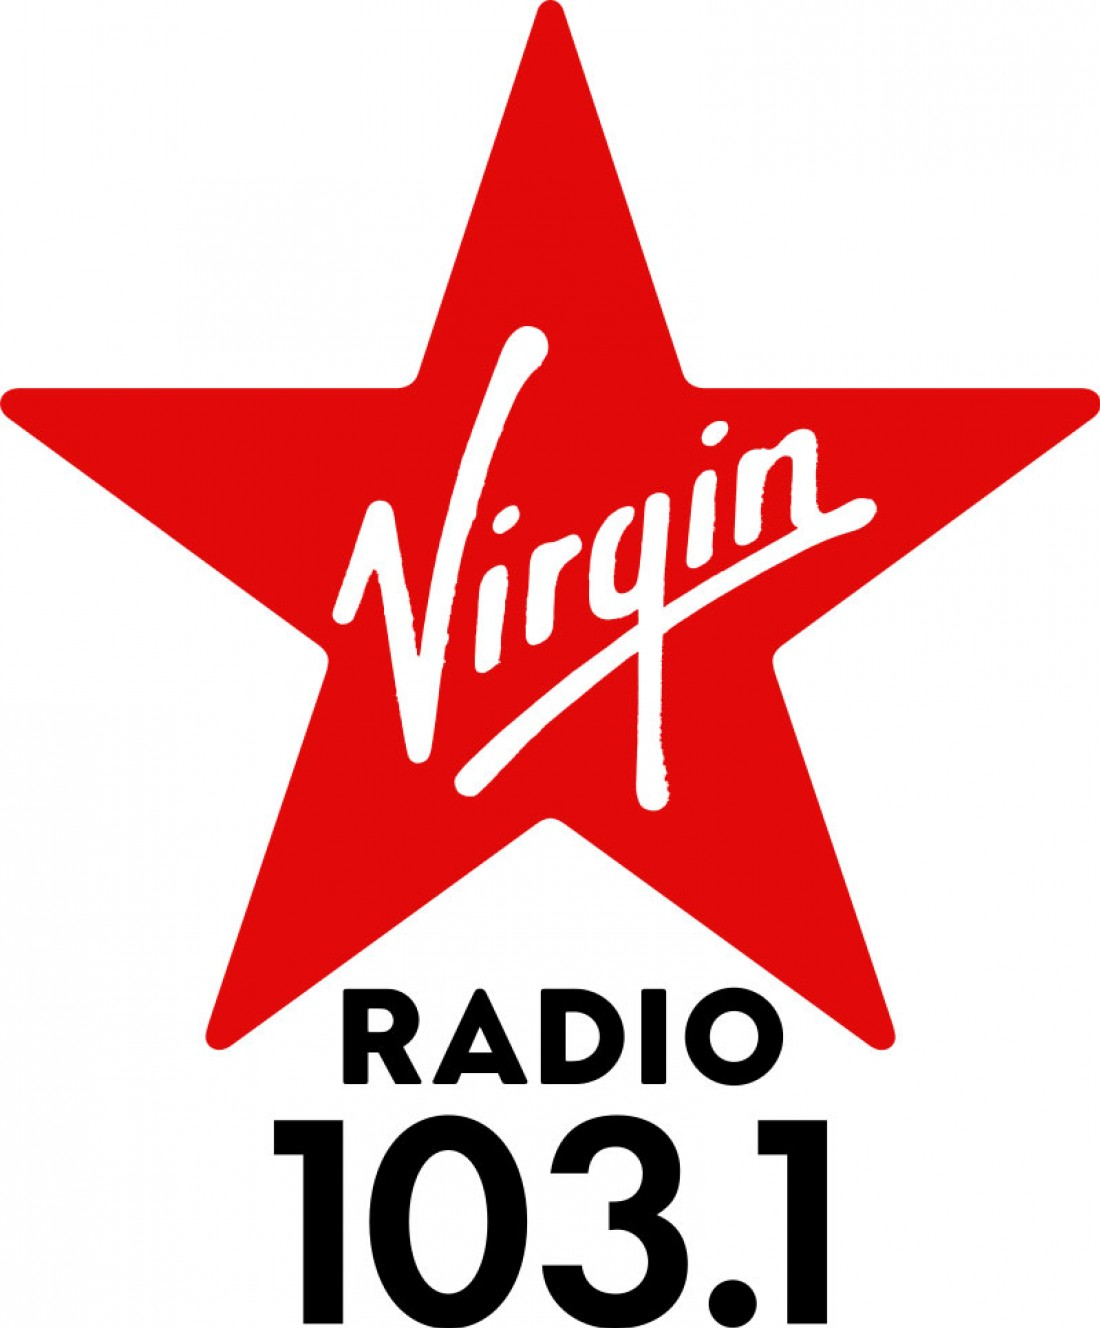 1031 FM Virgin Radio